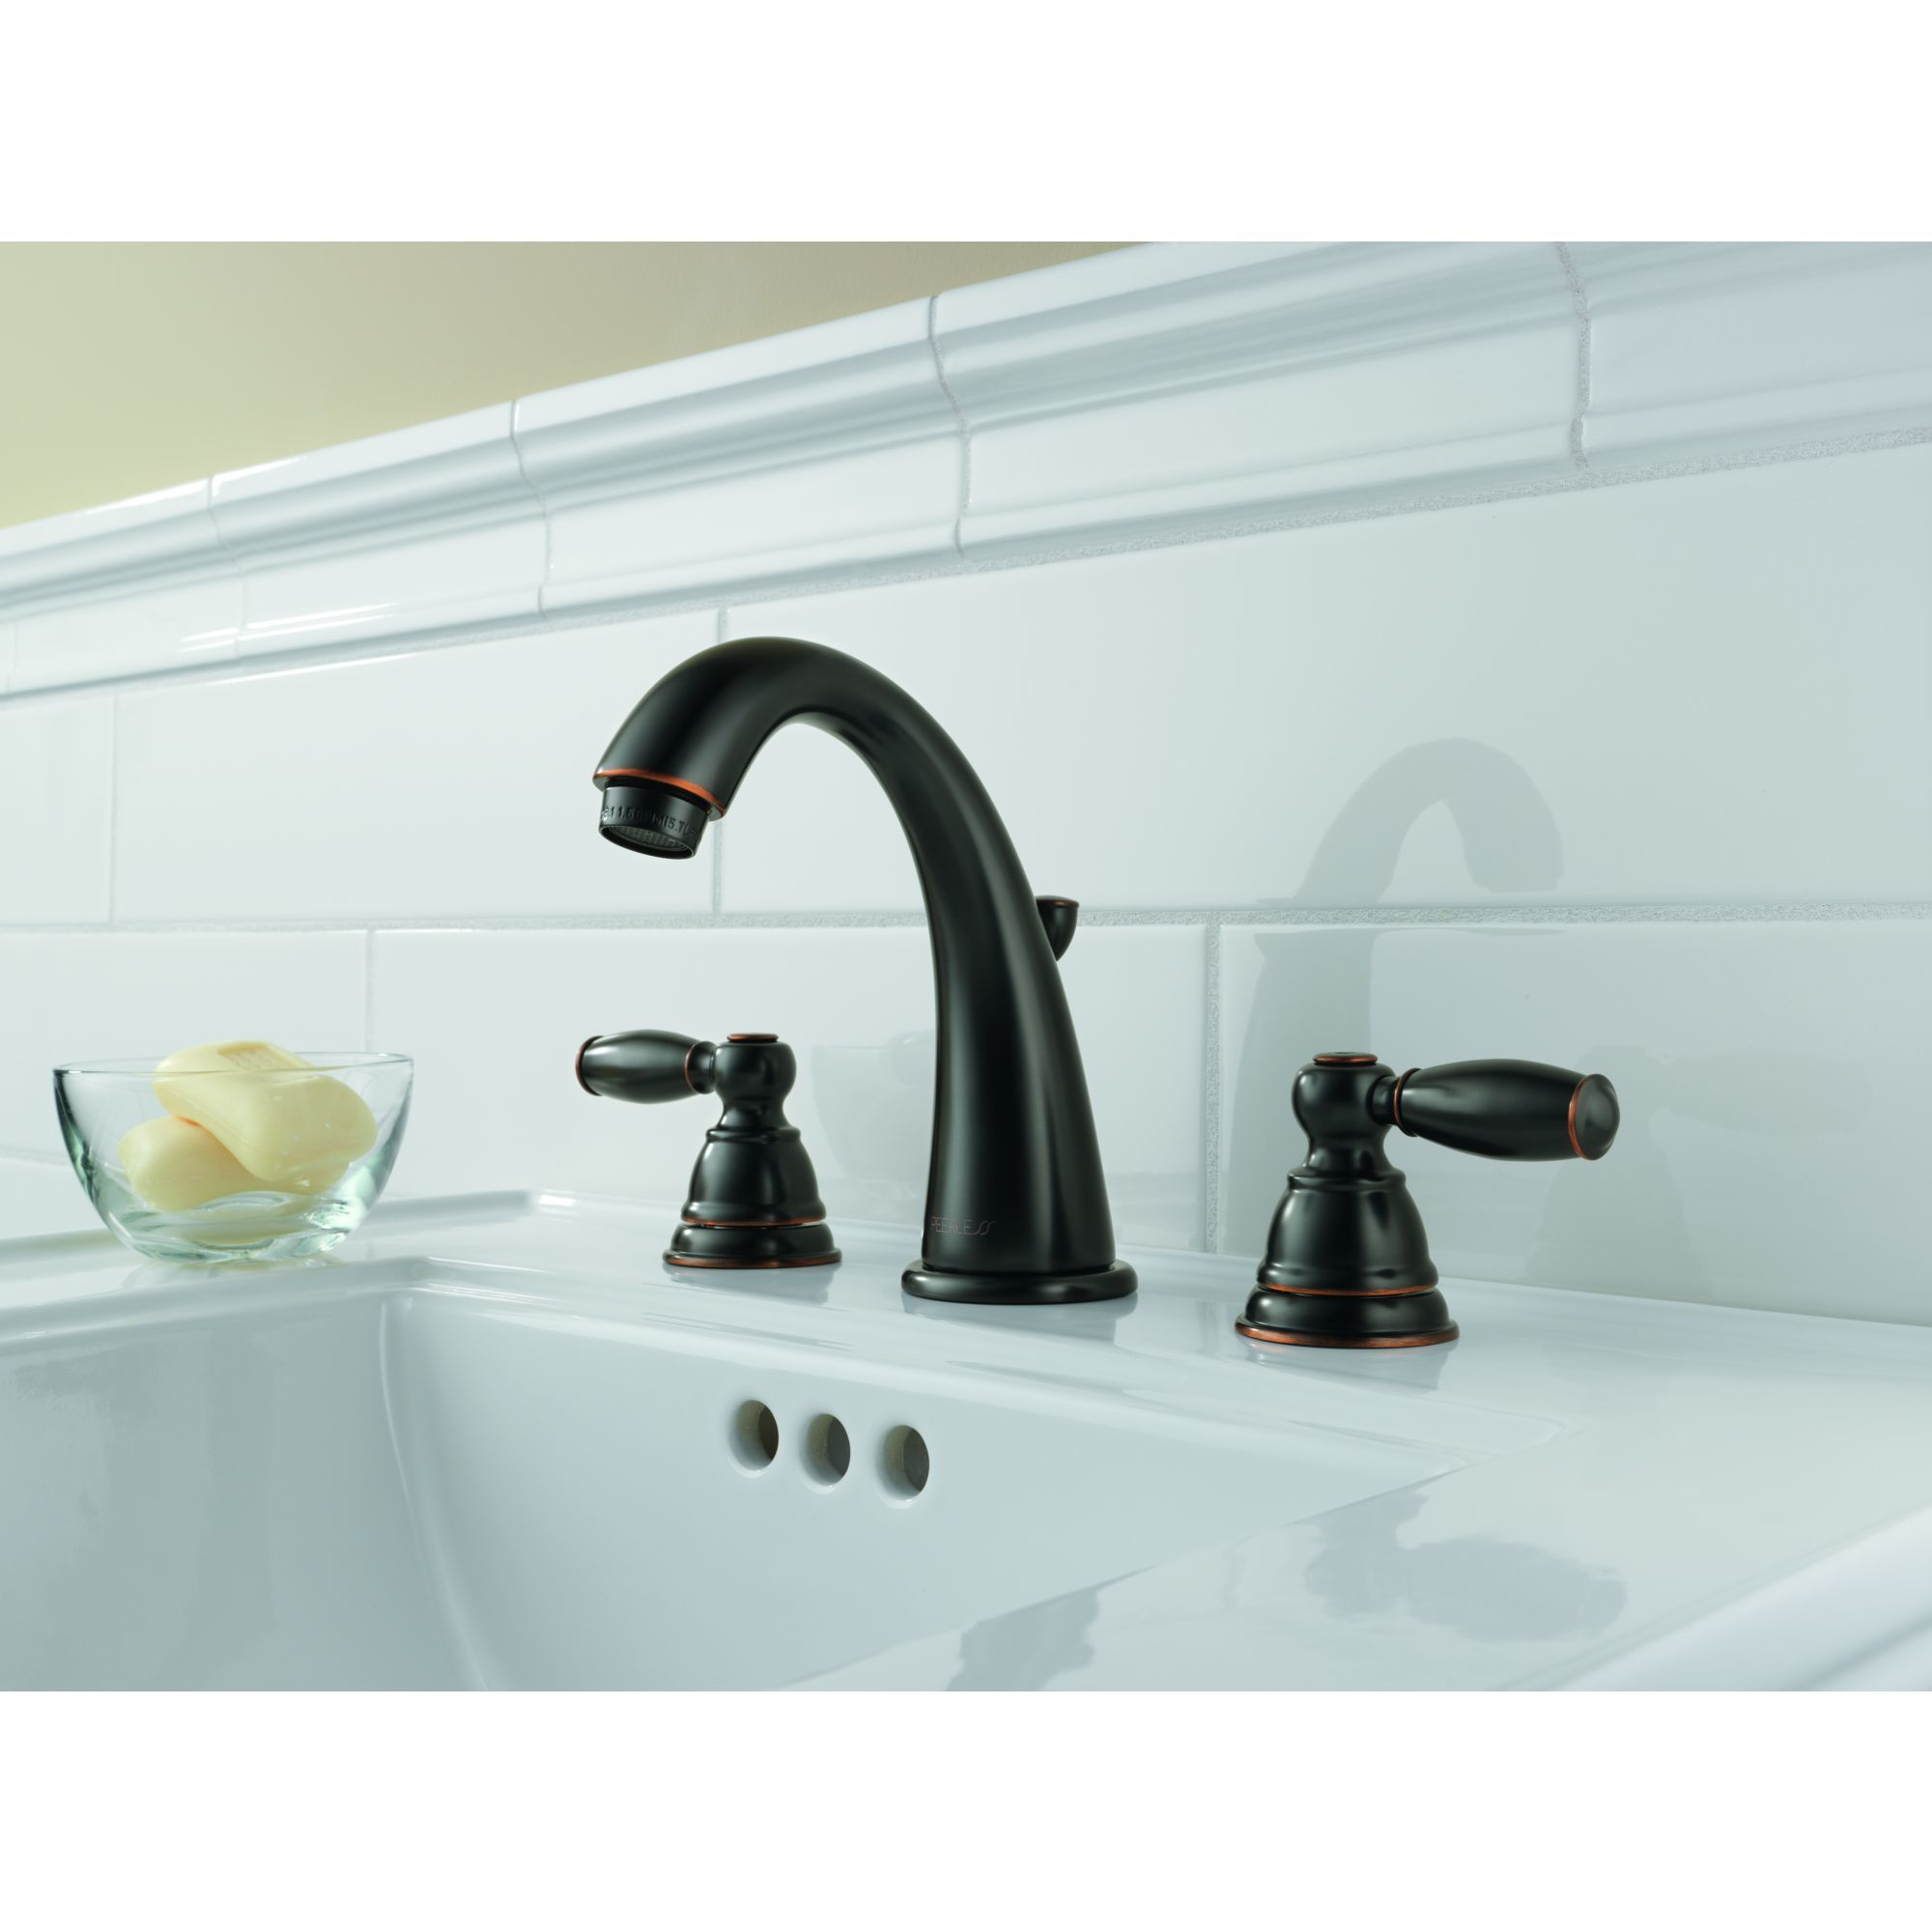 Modern Peerless Faucets Ensign - Faucet Collections - thoughtfire.info